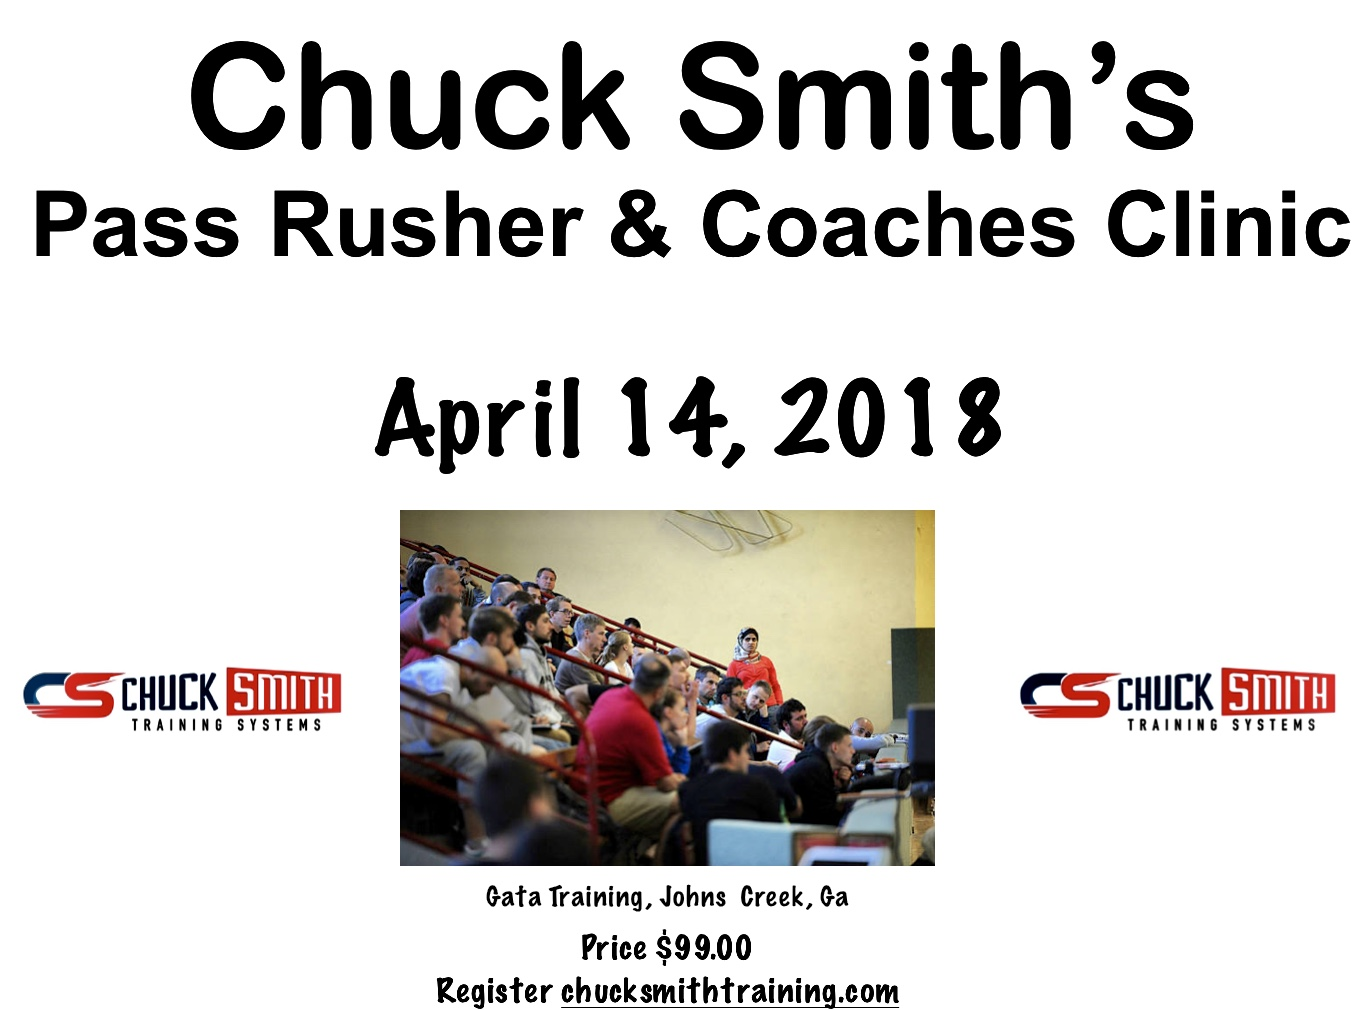 Chuck Smith's Players & Pass Rush Clinic